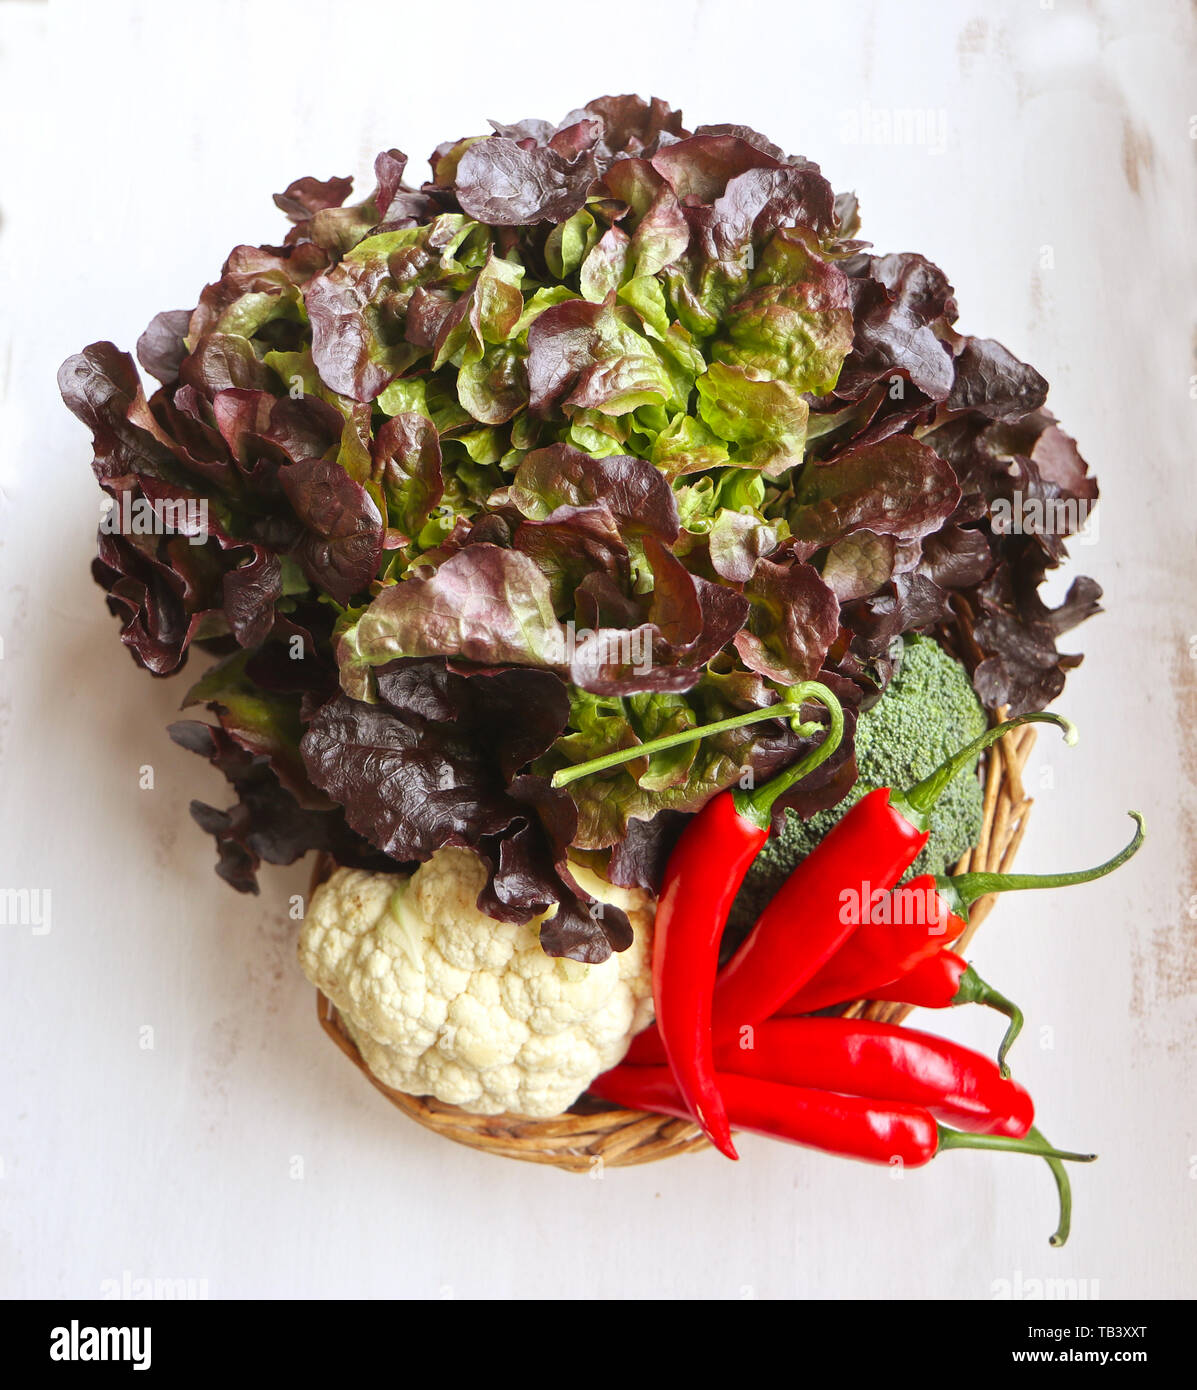 Red batavia lettuce, cauliflower and red peppers: ingredients of summer salads Stock Photo